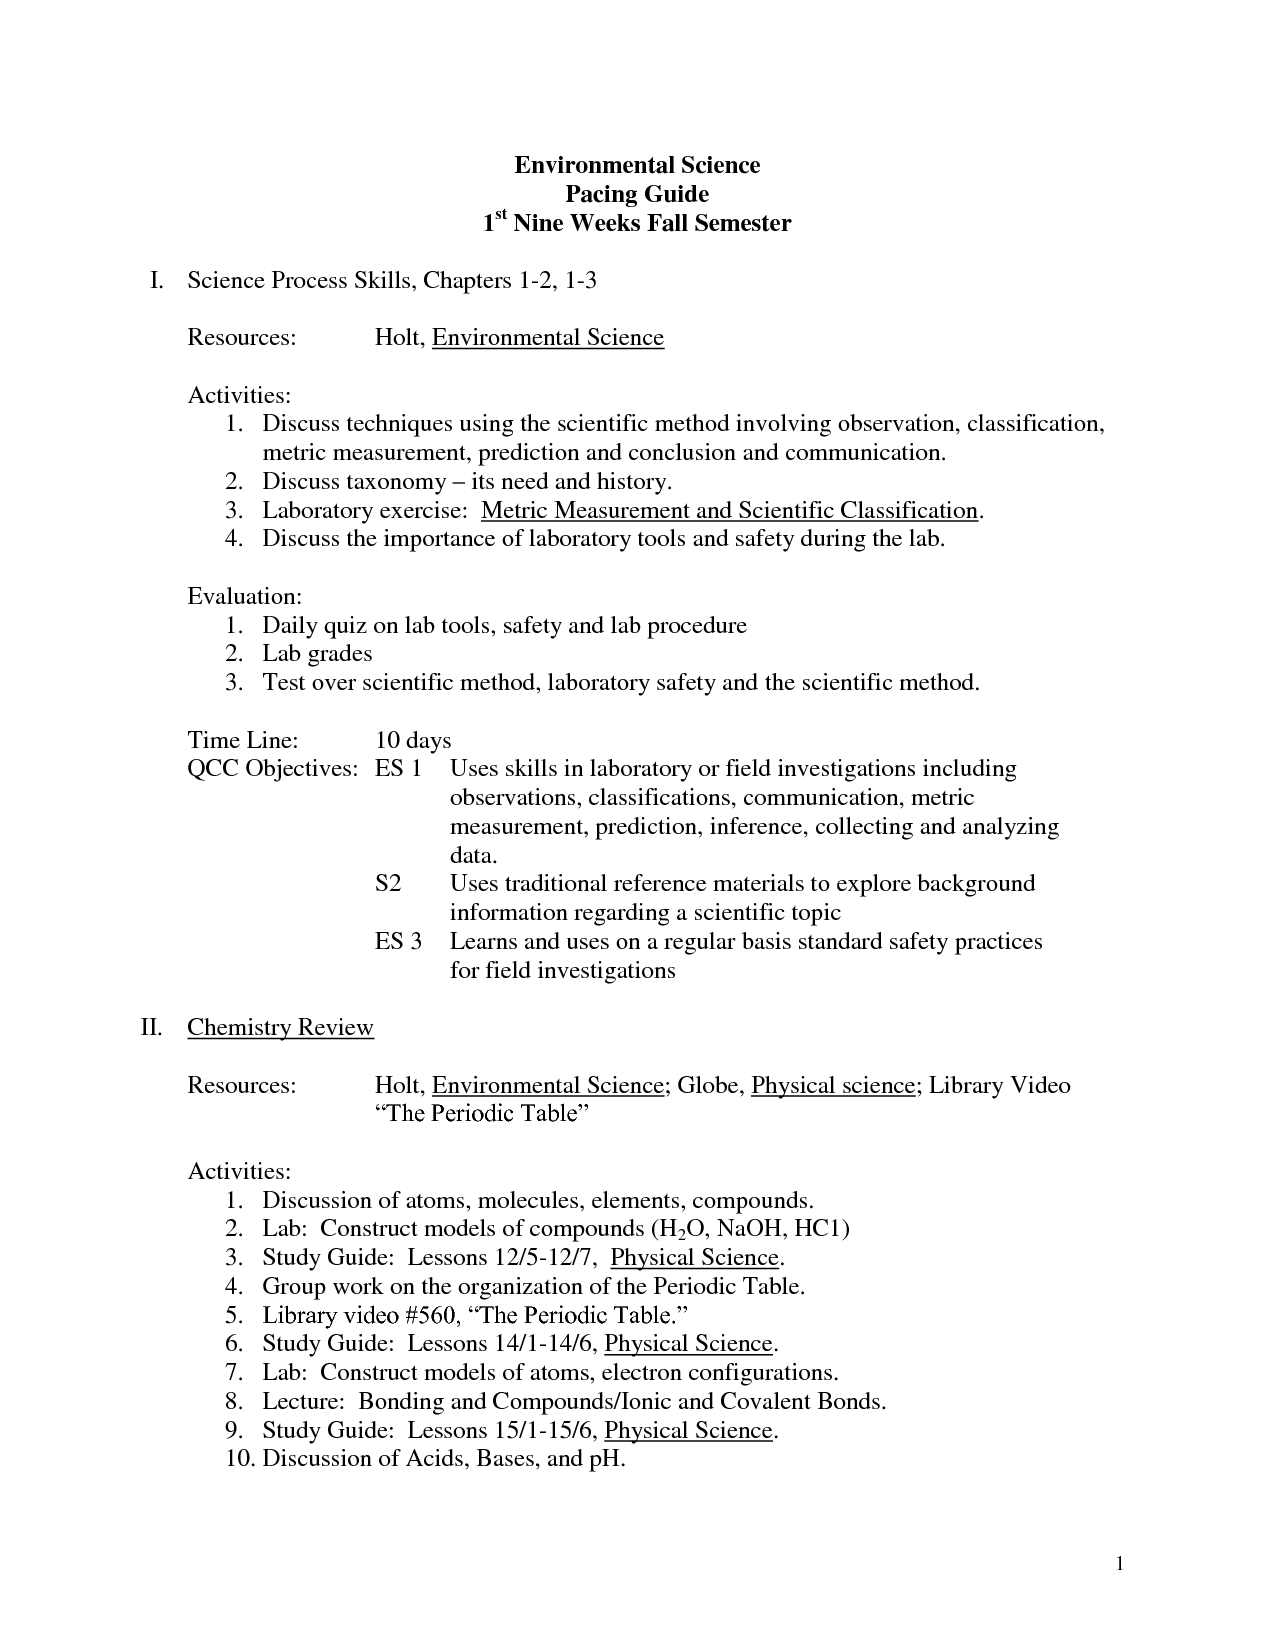 Skills Worksheet Concept Review Section Balancing Chemical Equations Answer Key